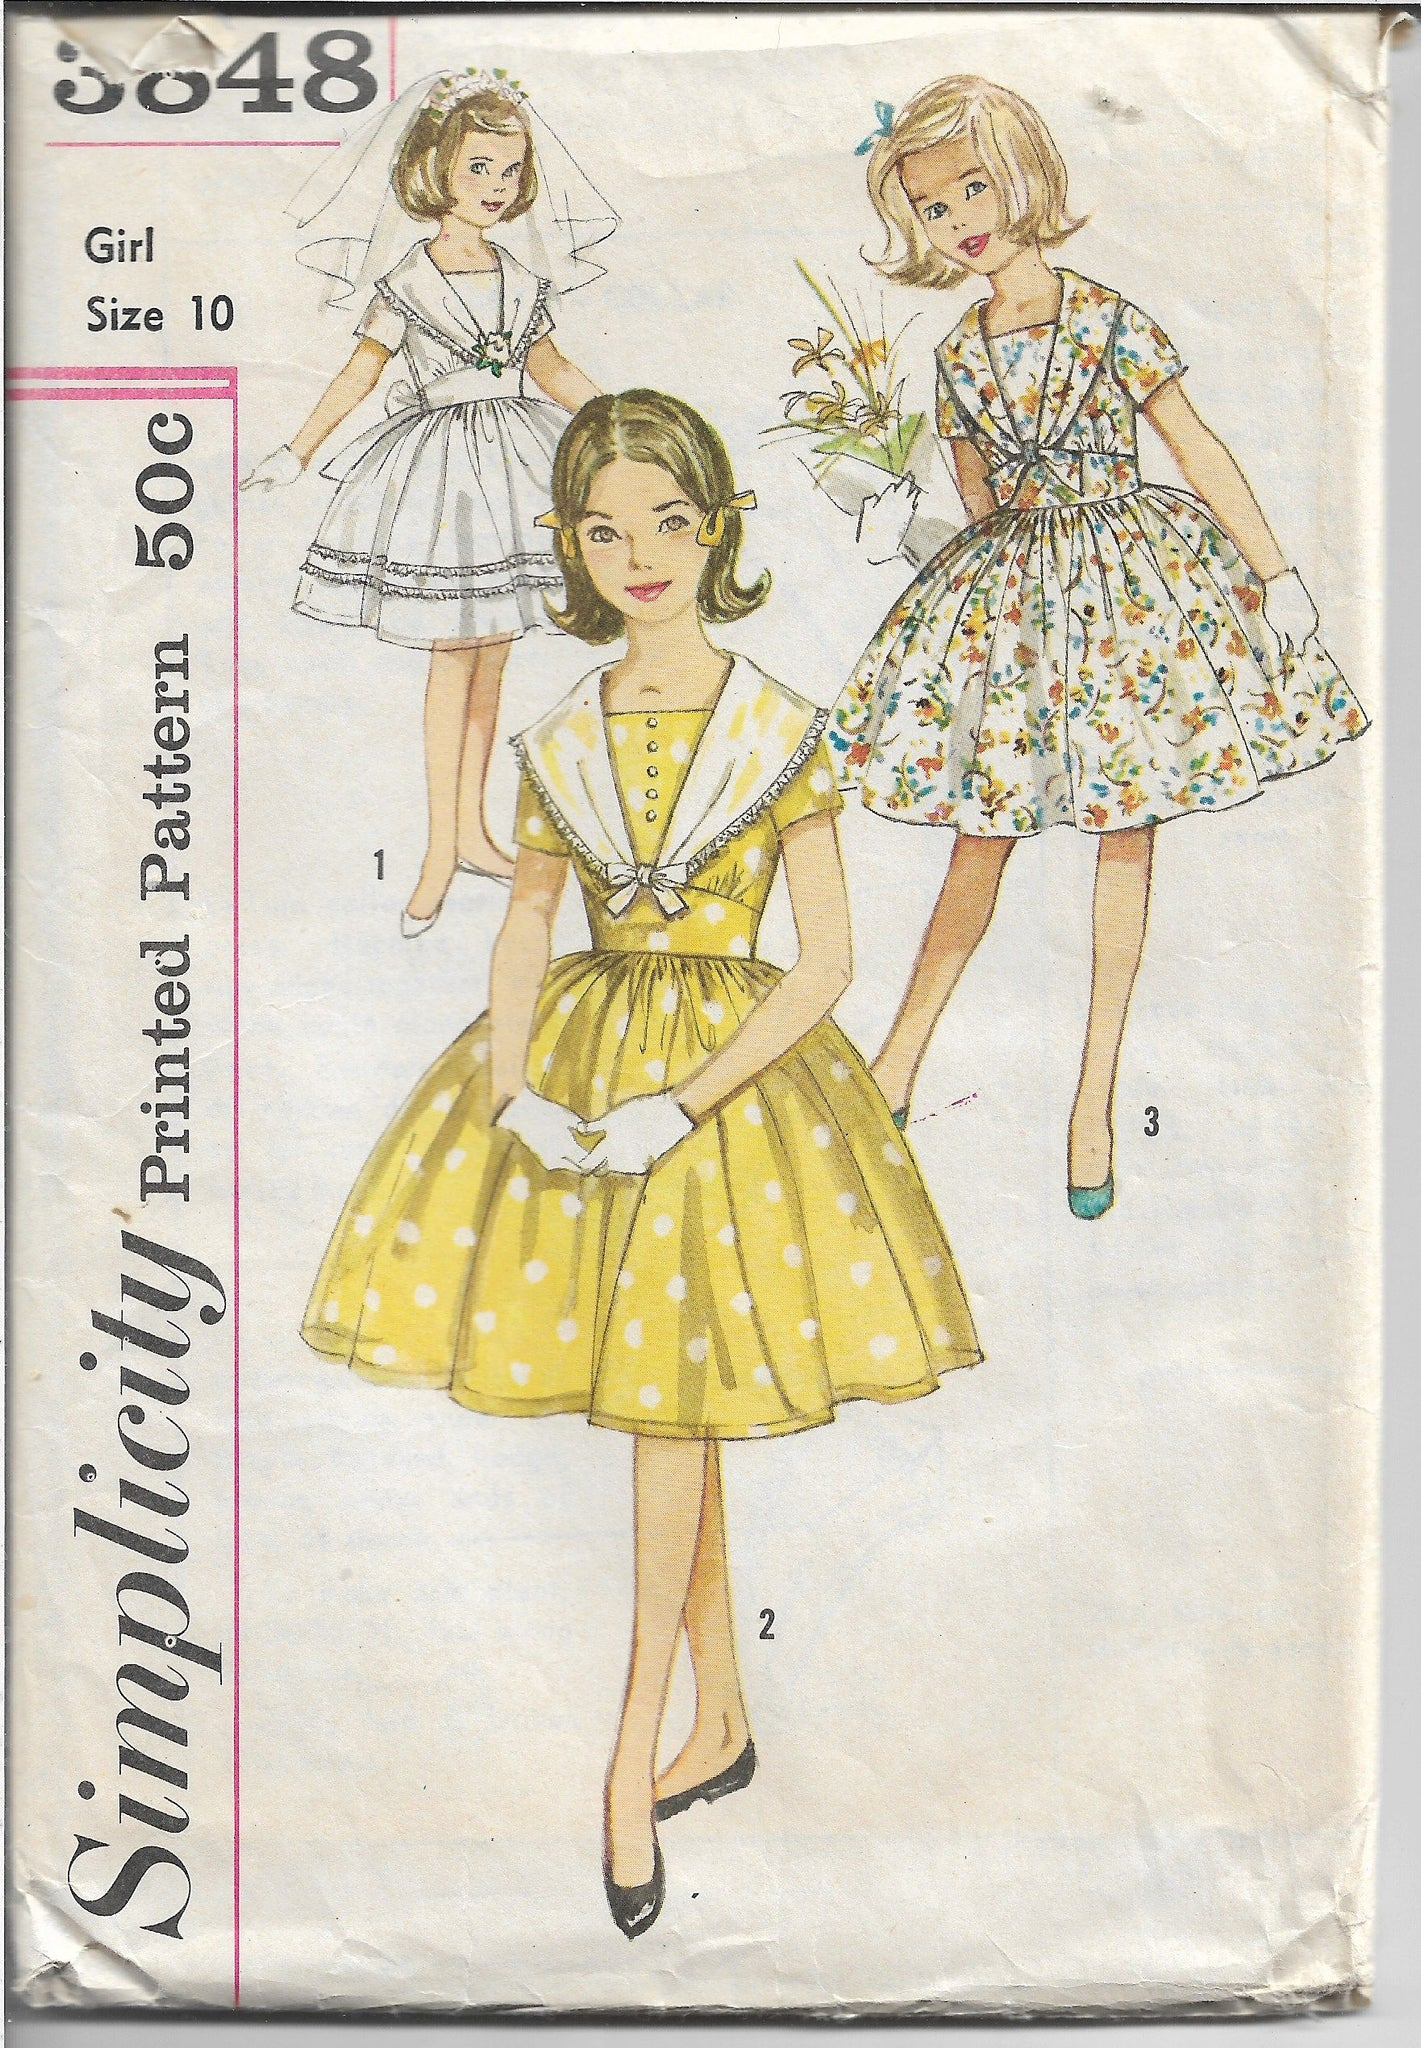 Simplicity 3848 Girls Party Dress Tie Collar Vintage Sewing Pattern 1960s - VintageStitching - Vintage Sewing Patterns